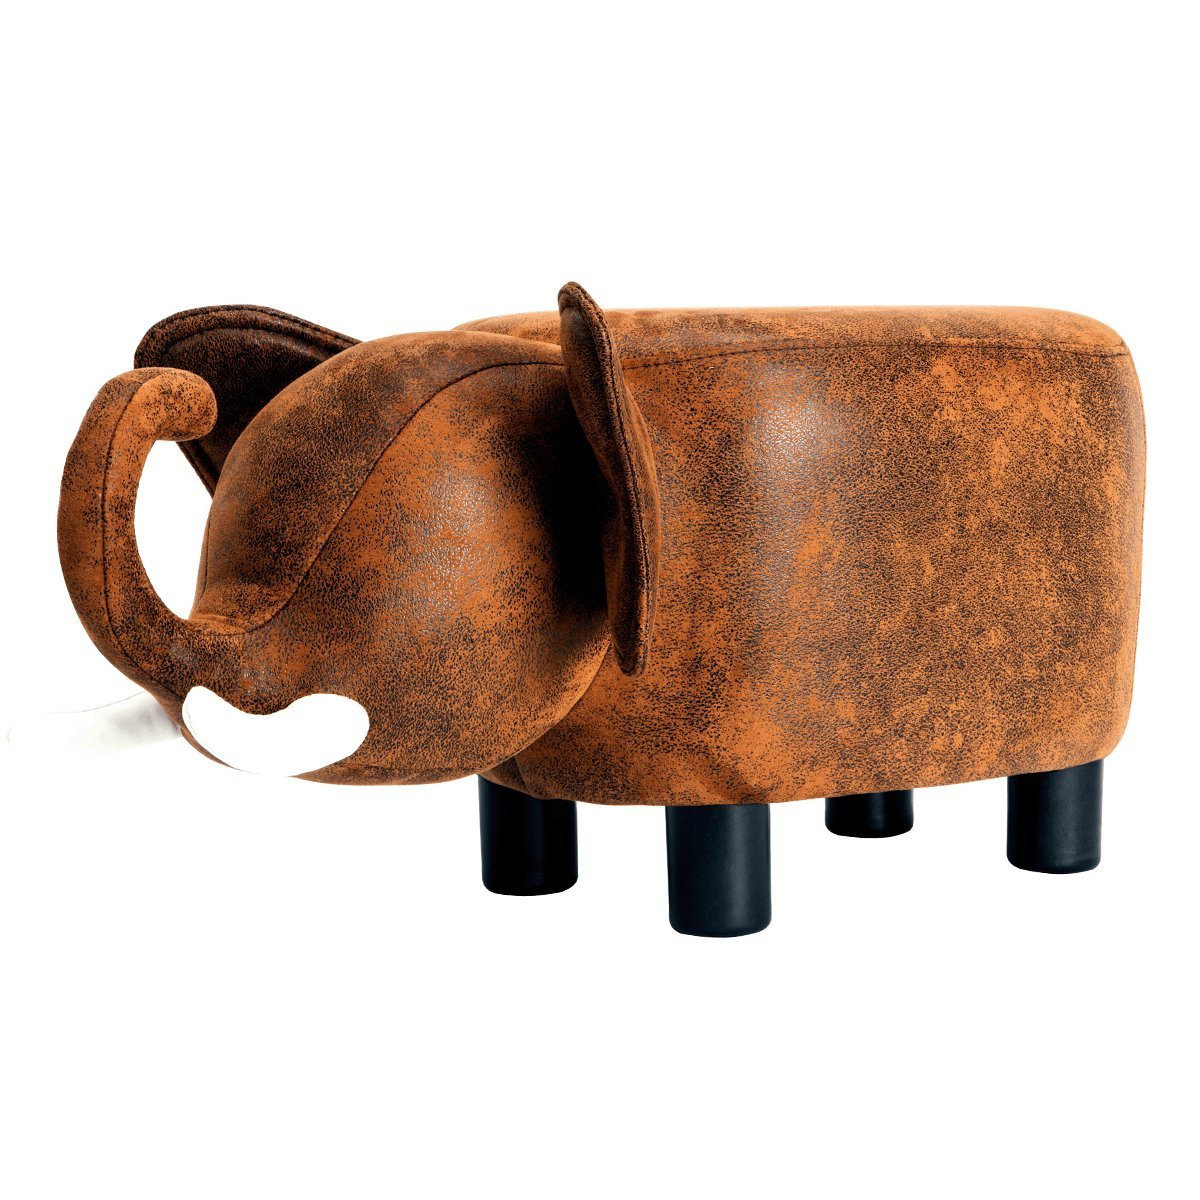 GUTEEN Upholstered Ride-on Toy Seat Ottoman Footrest Stool with Vivid Adorable Animal-Like Features(Brown elephant) by GUTEEN